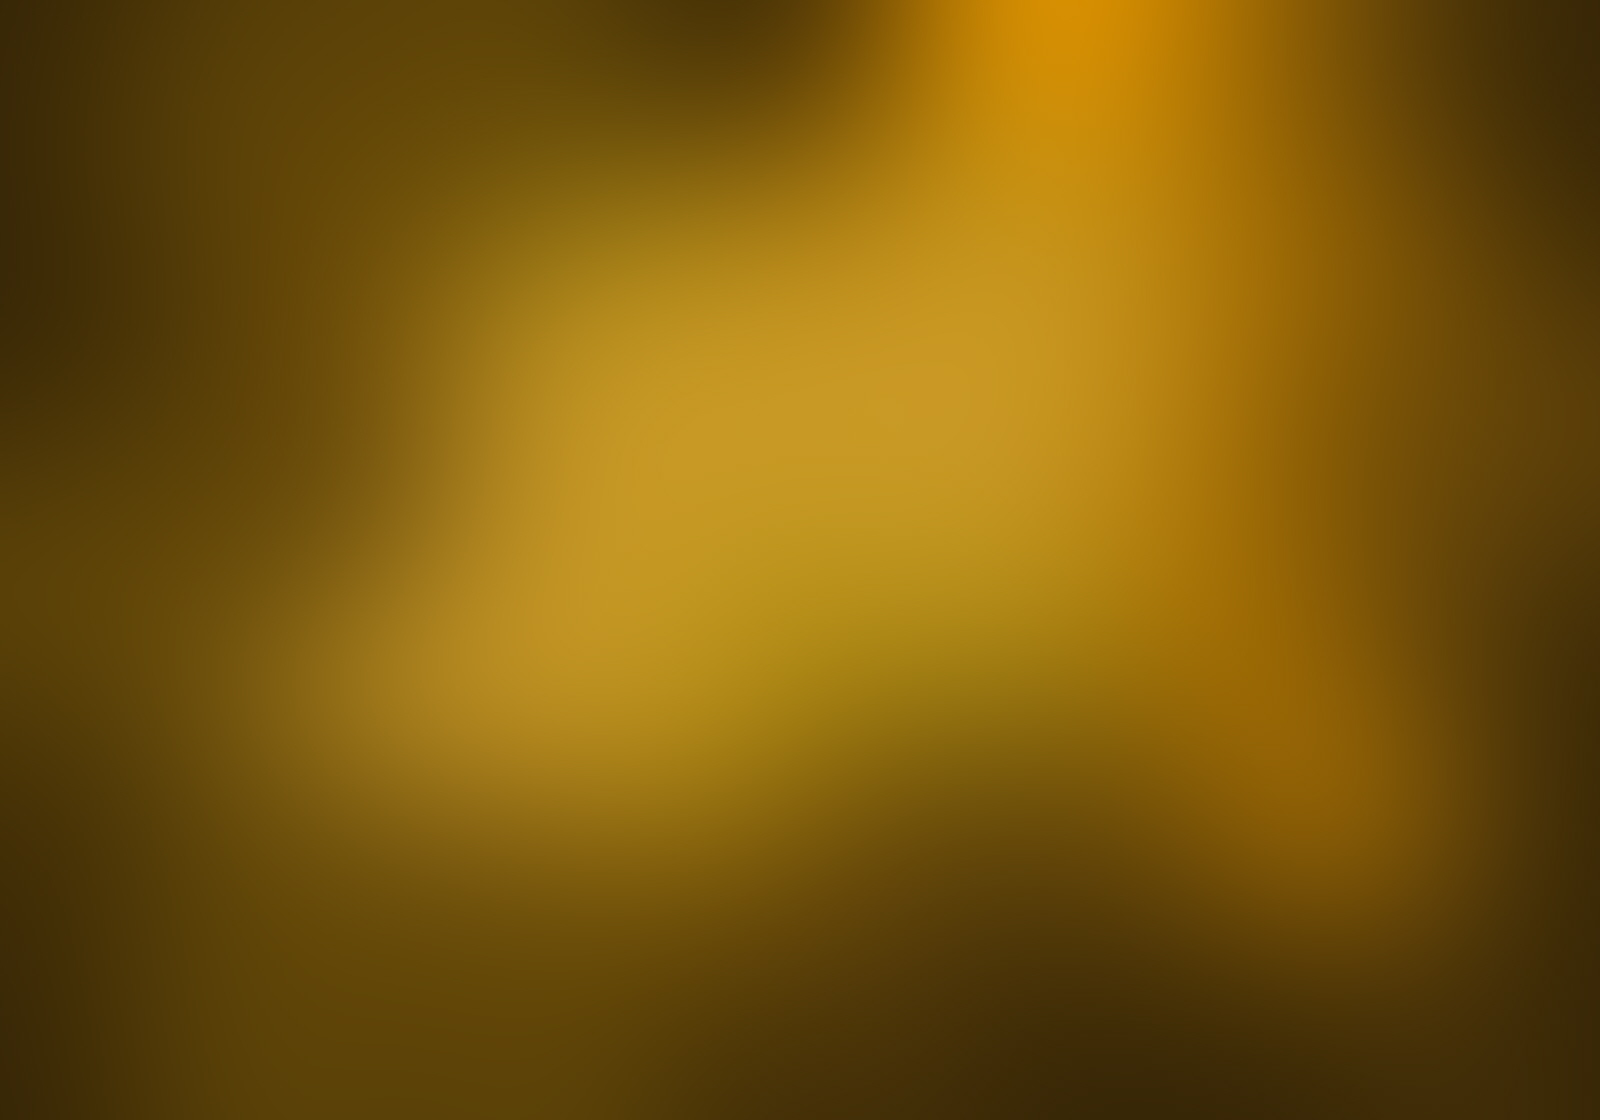 Amazing Wallpaper Download Hd Free Stock Photo 9379 Gold Background Blur Freeimageslive